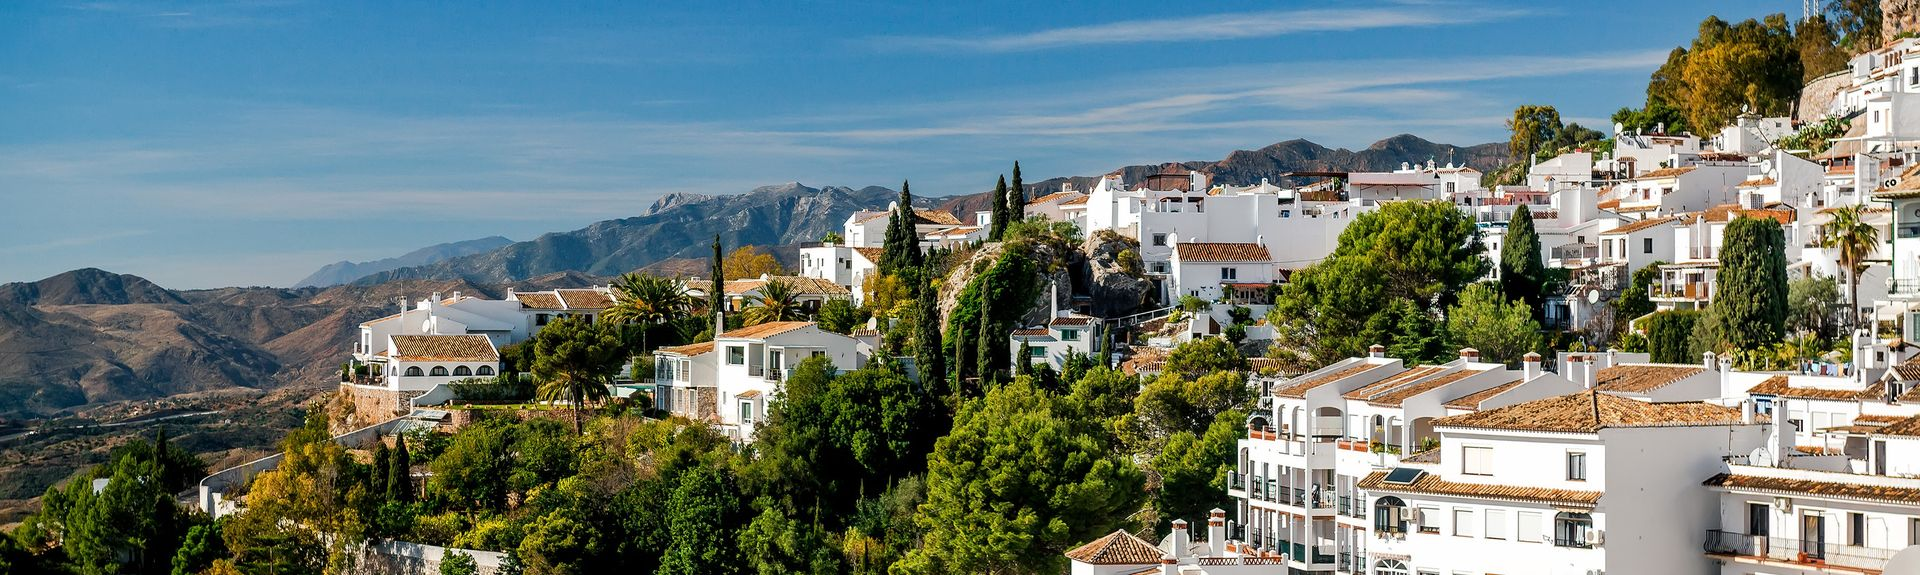 Sitio de Calahonda, Mijas, Andalusia, Spain